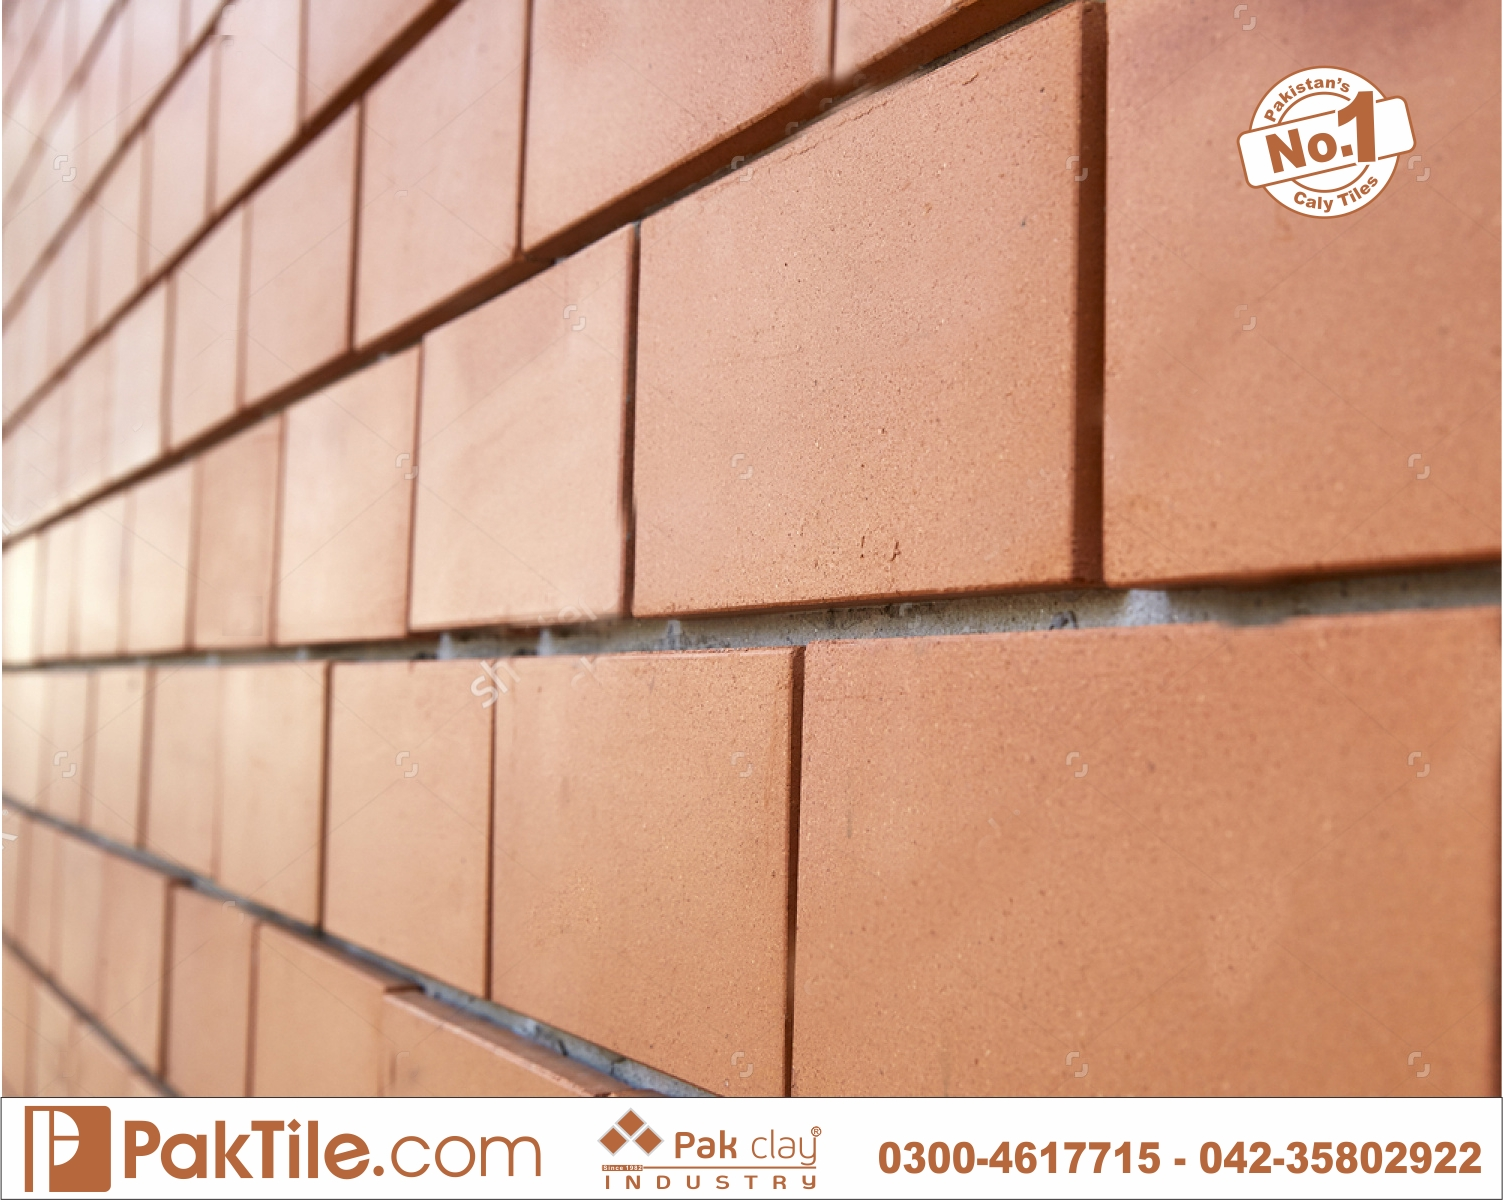 10 Pak Clay Industry red brick tiles rates in pakistan images